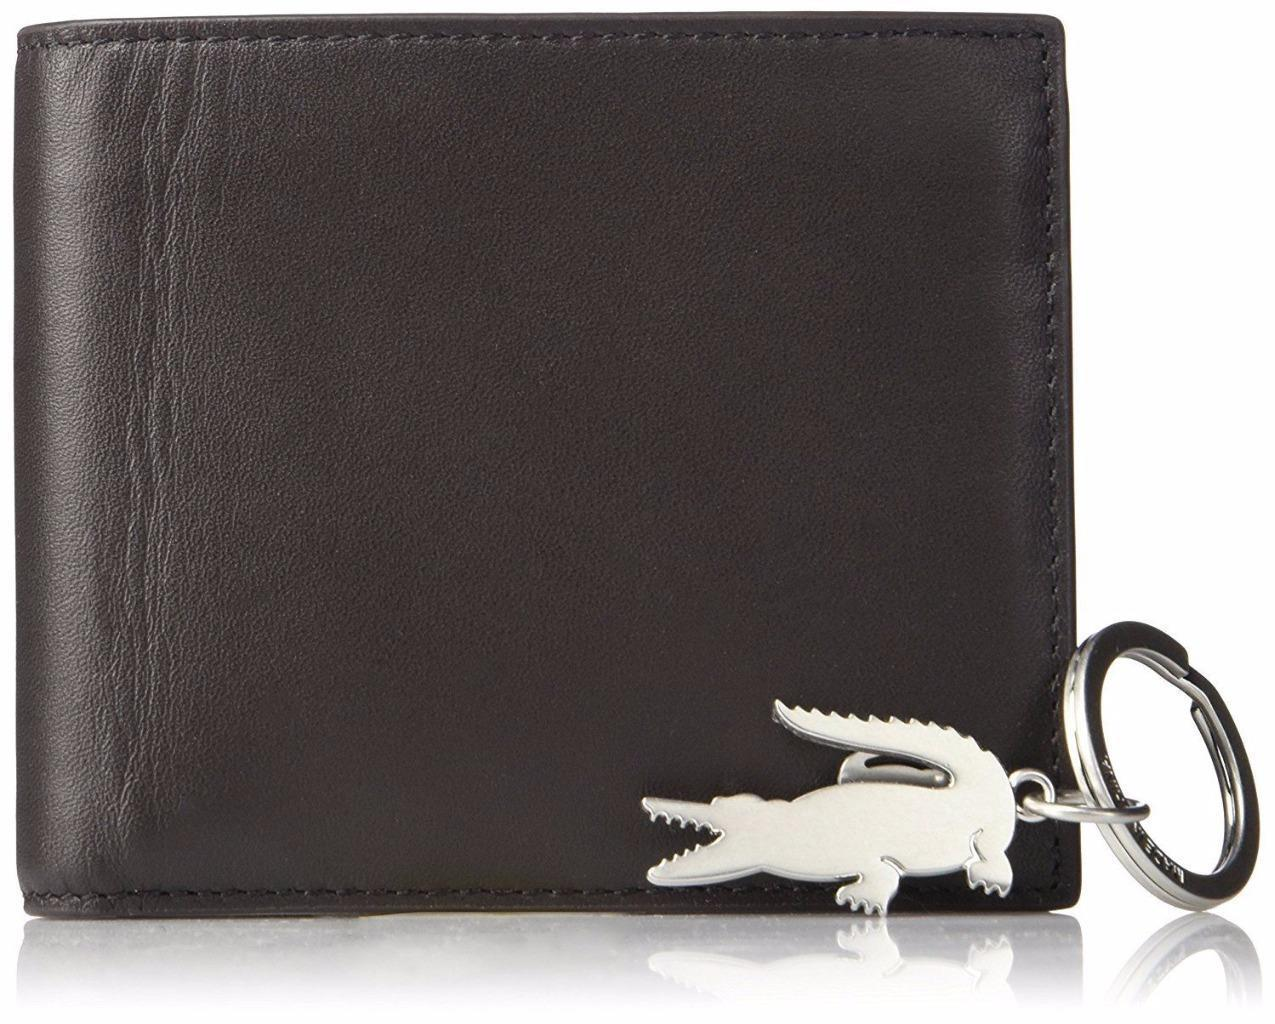 New Lacoste Premium Men's M Billfold Wallet Crocodile Key Ring Brown NH2072FG